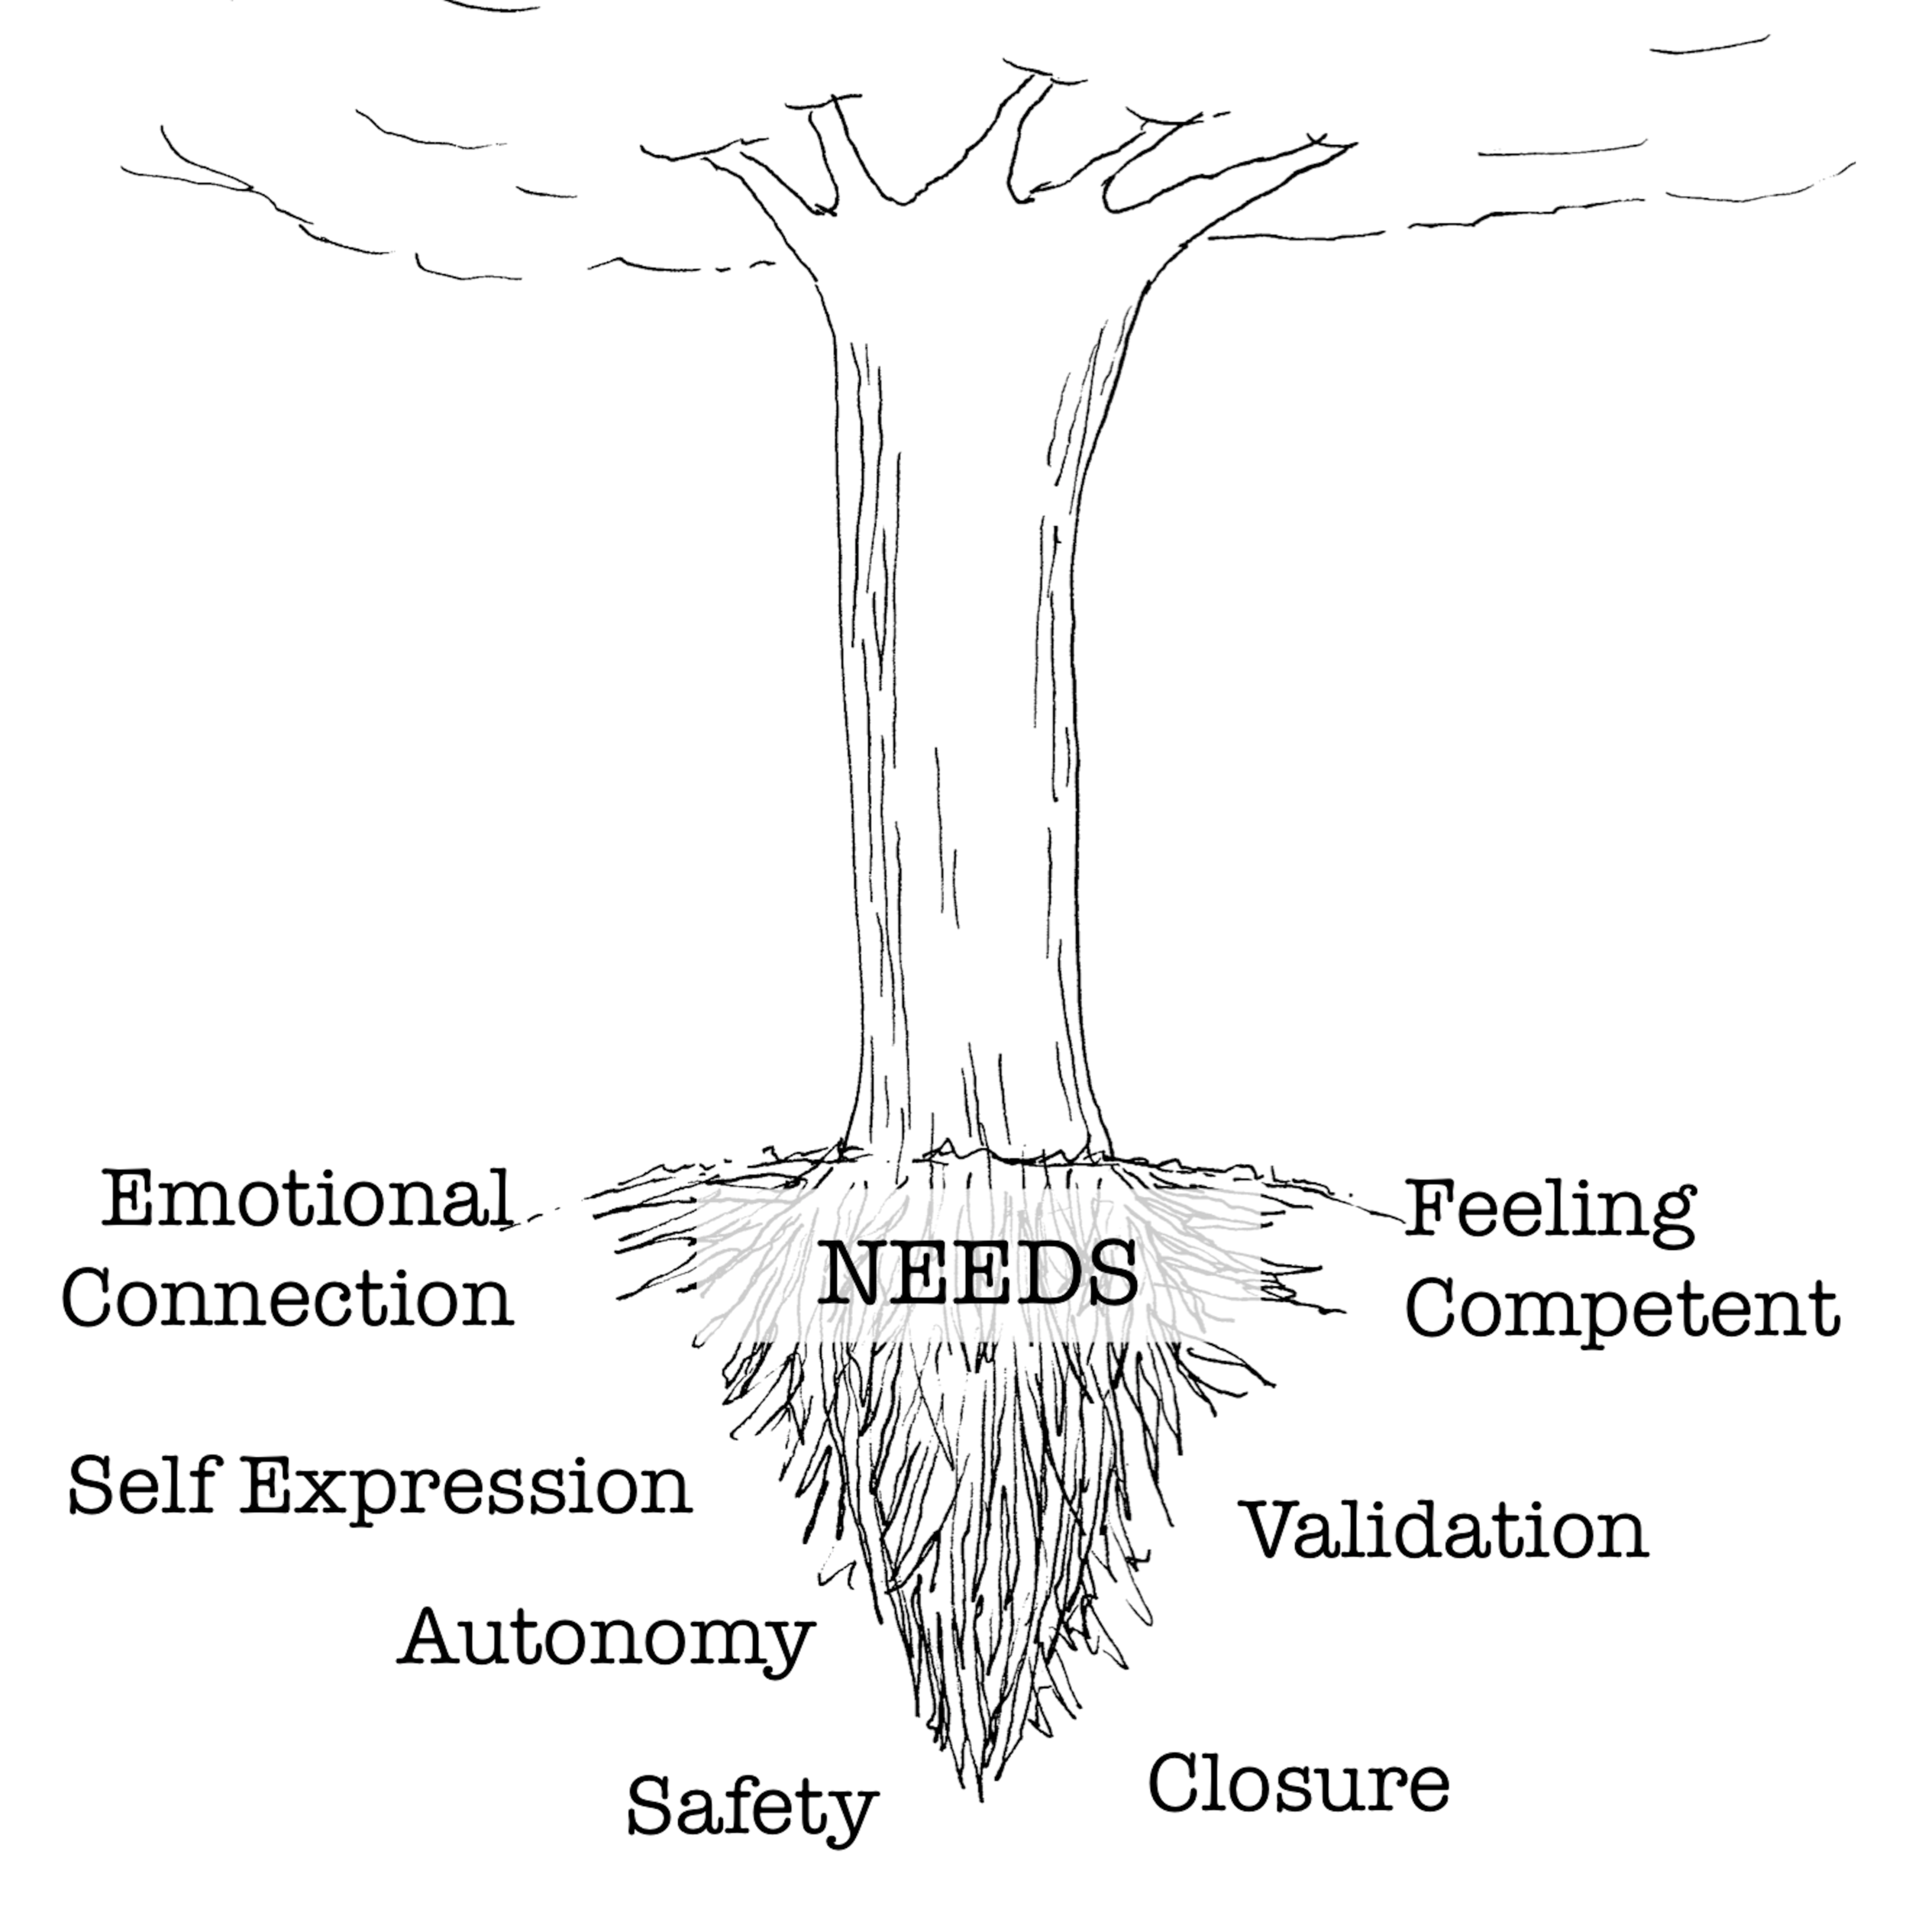 Here are some of our basic emotional needs. If our needs are not met or when several needs collide and conflict with one another, our emotions start to go south.